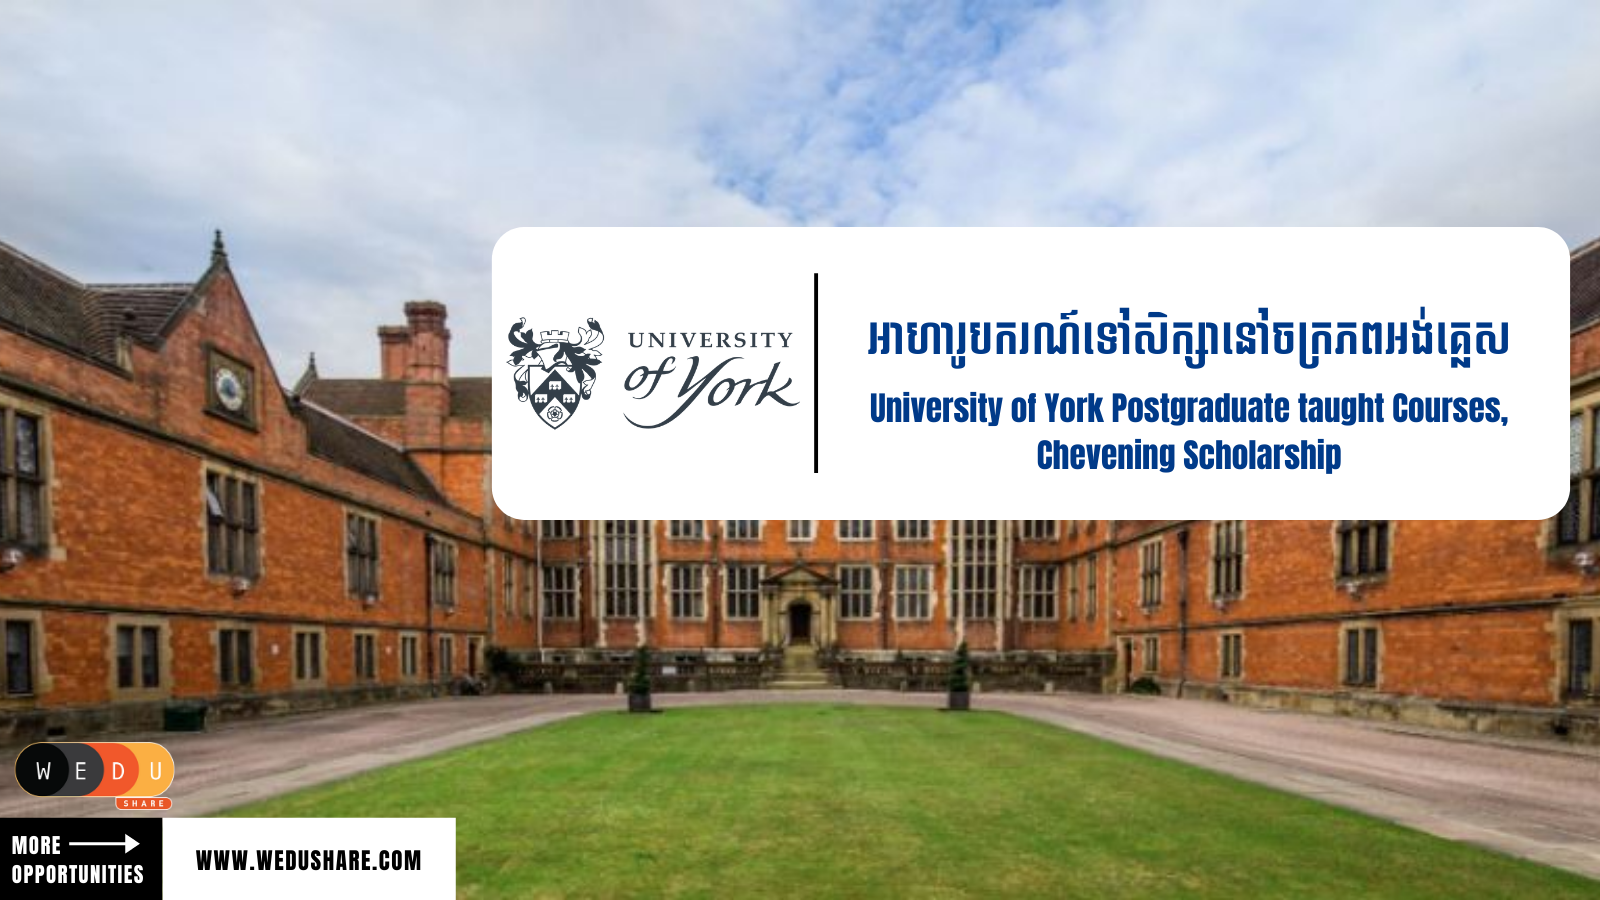 University of York Postgraduate Taught Courses, Chevening Scholarship